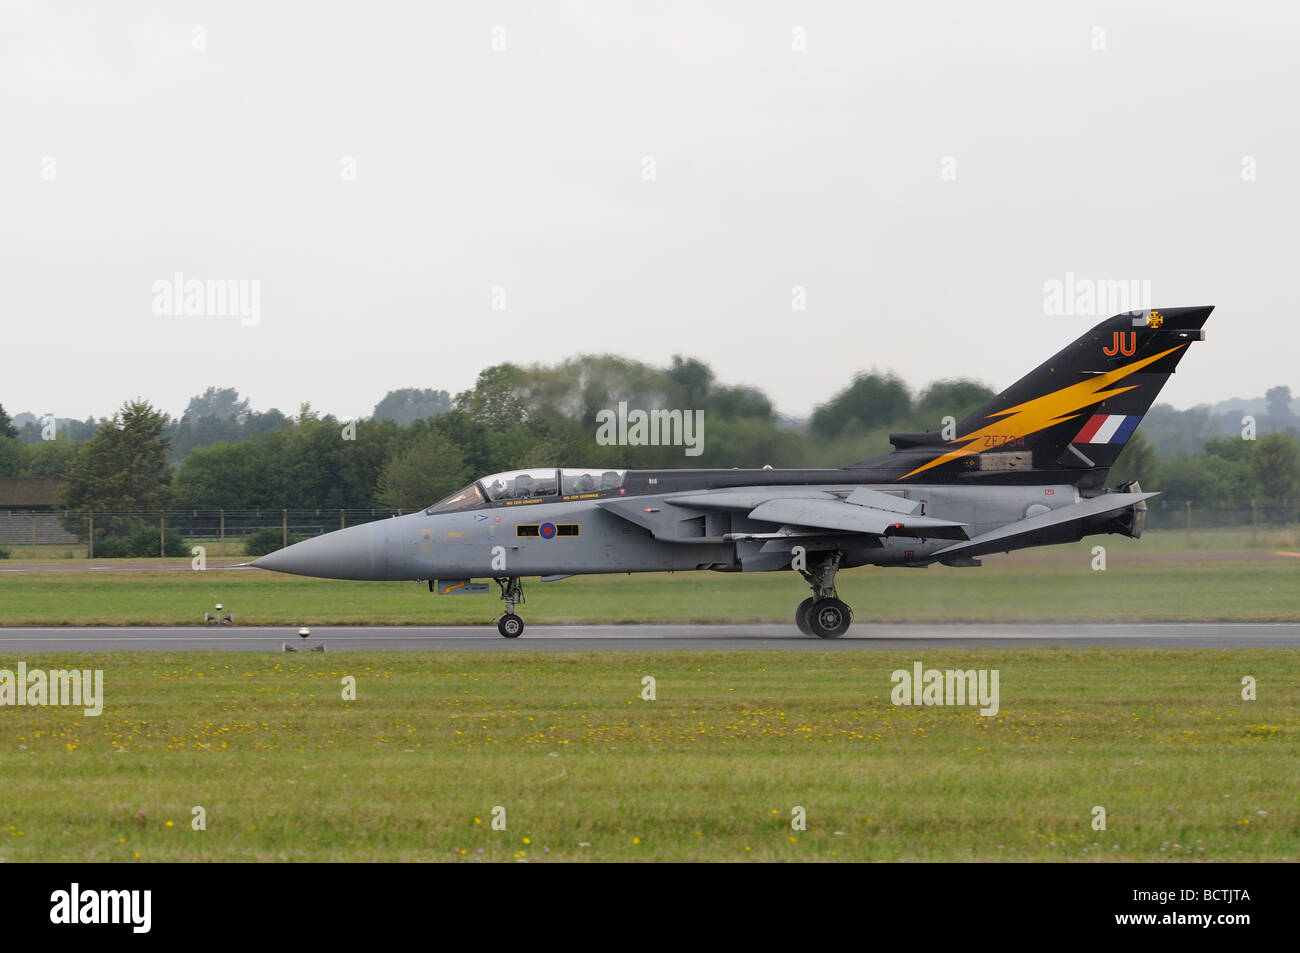 Tornado F3 from 111 Squadron Leuchars  arrives at RAF Fairford for the Royal International Air Tattoo - Stock Image